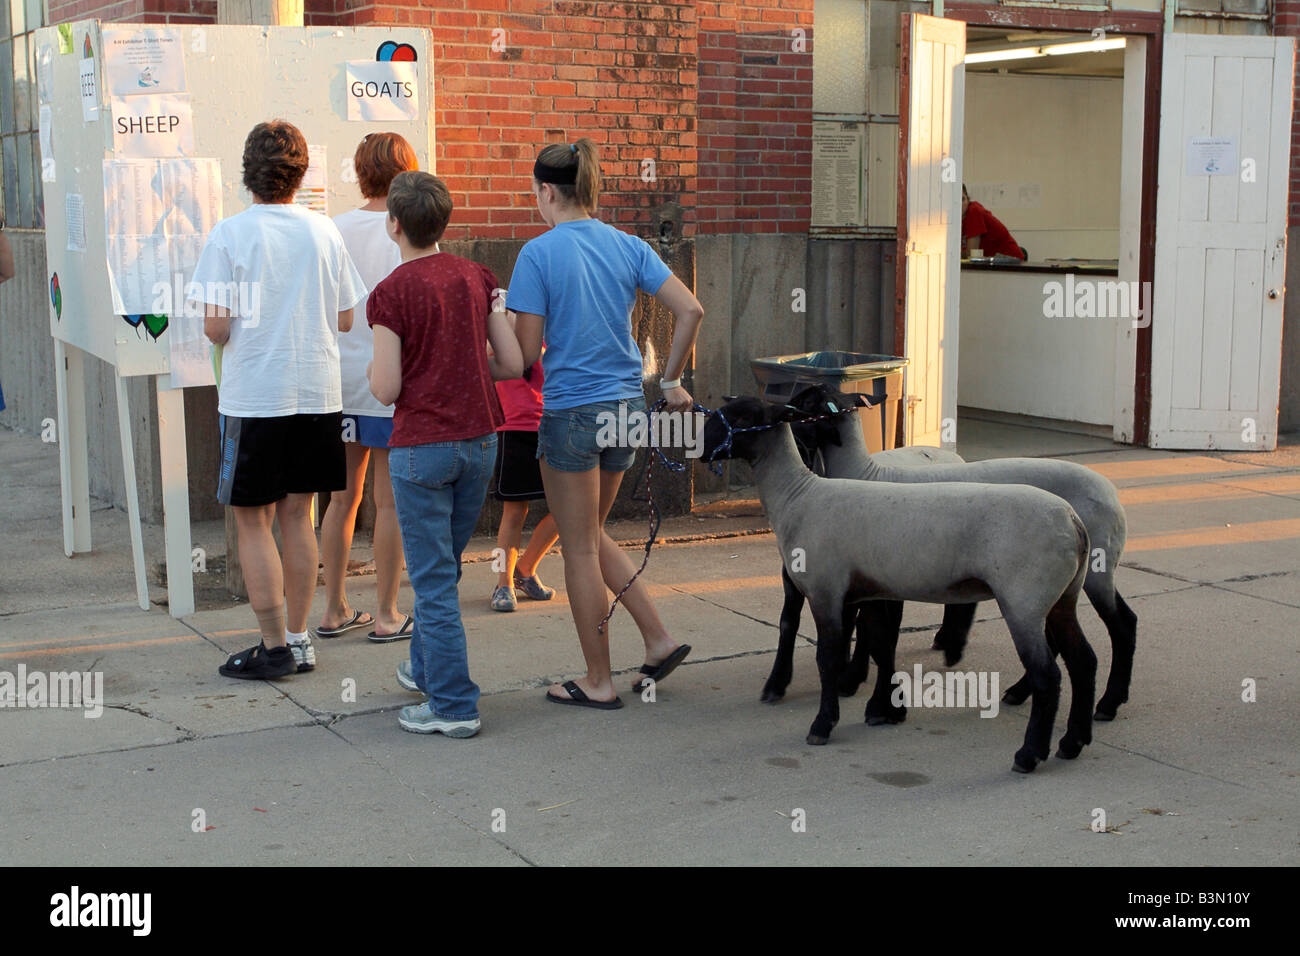 Queued for results, livestock contestants with sheep examine lists of winners. Nebraska State Fair, Lincoln, NE - Stock Image